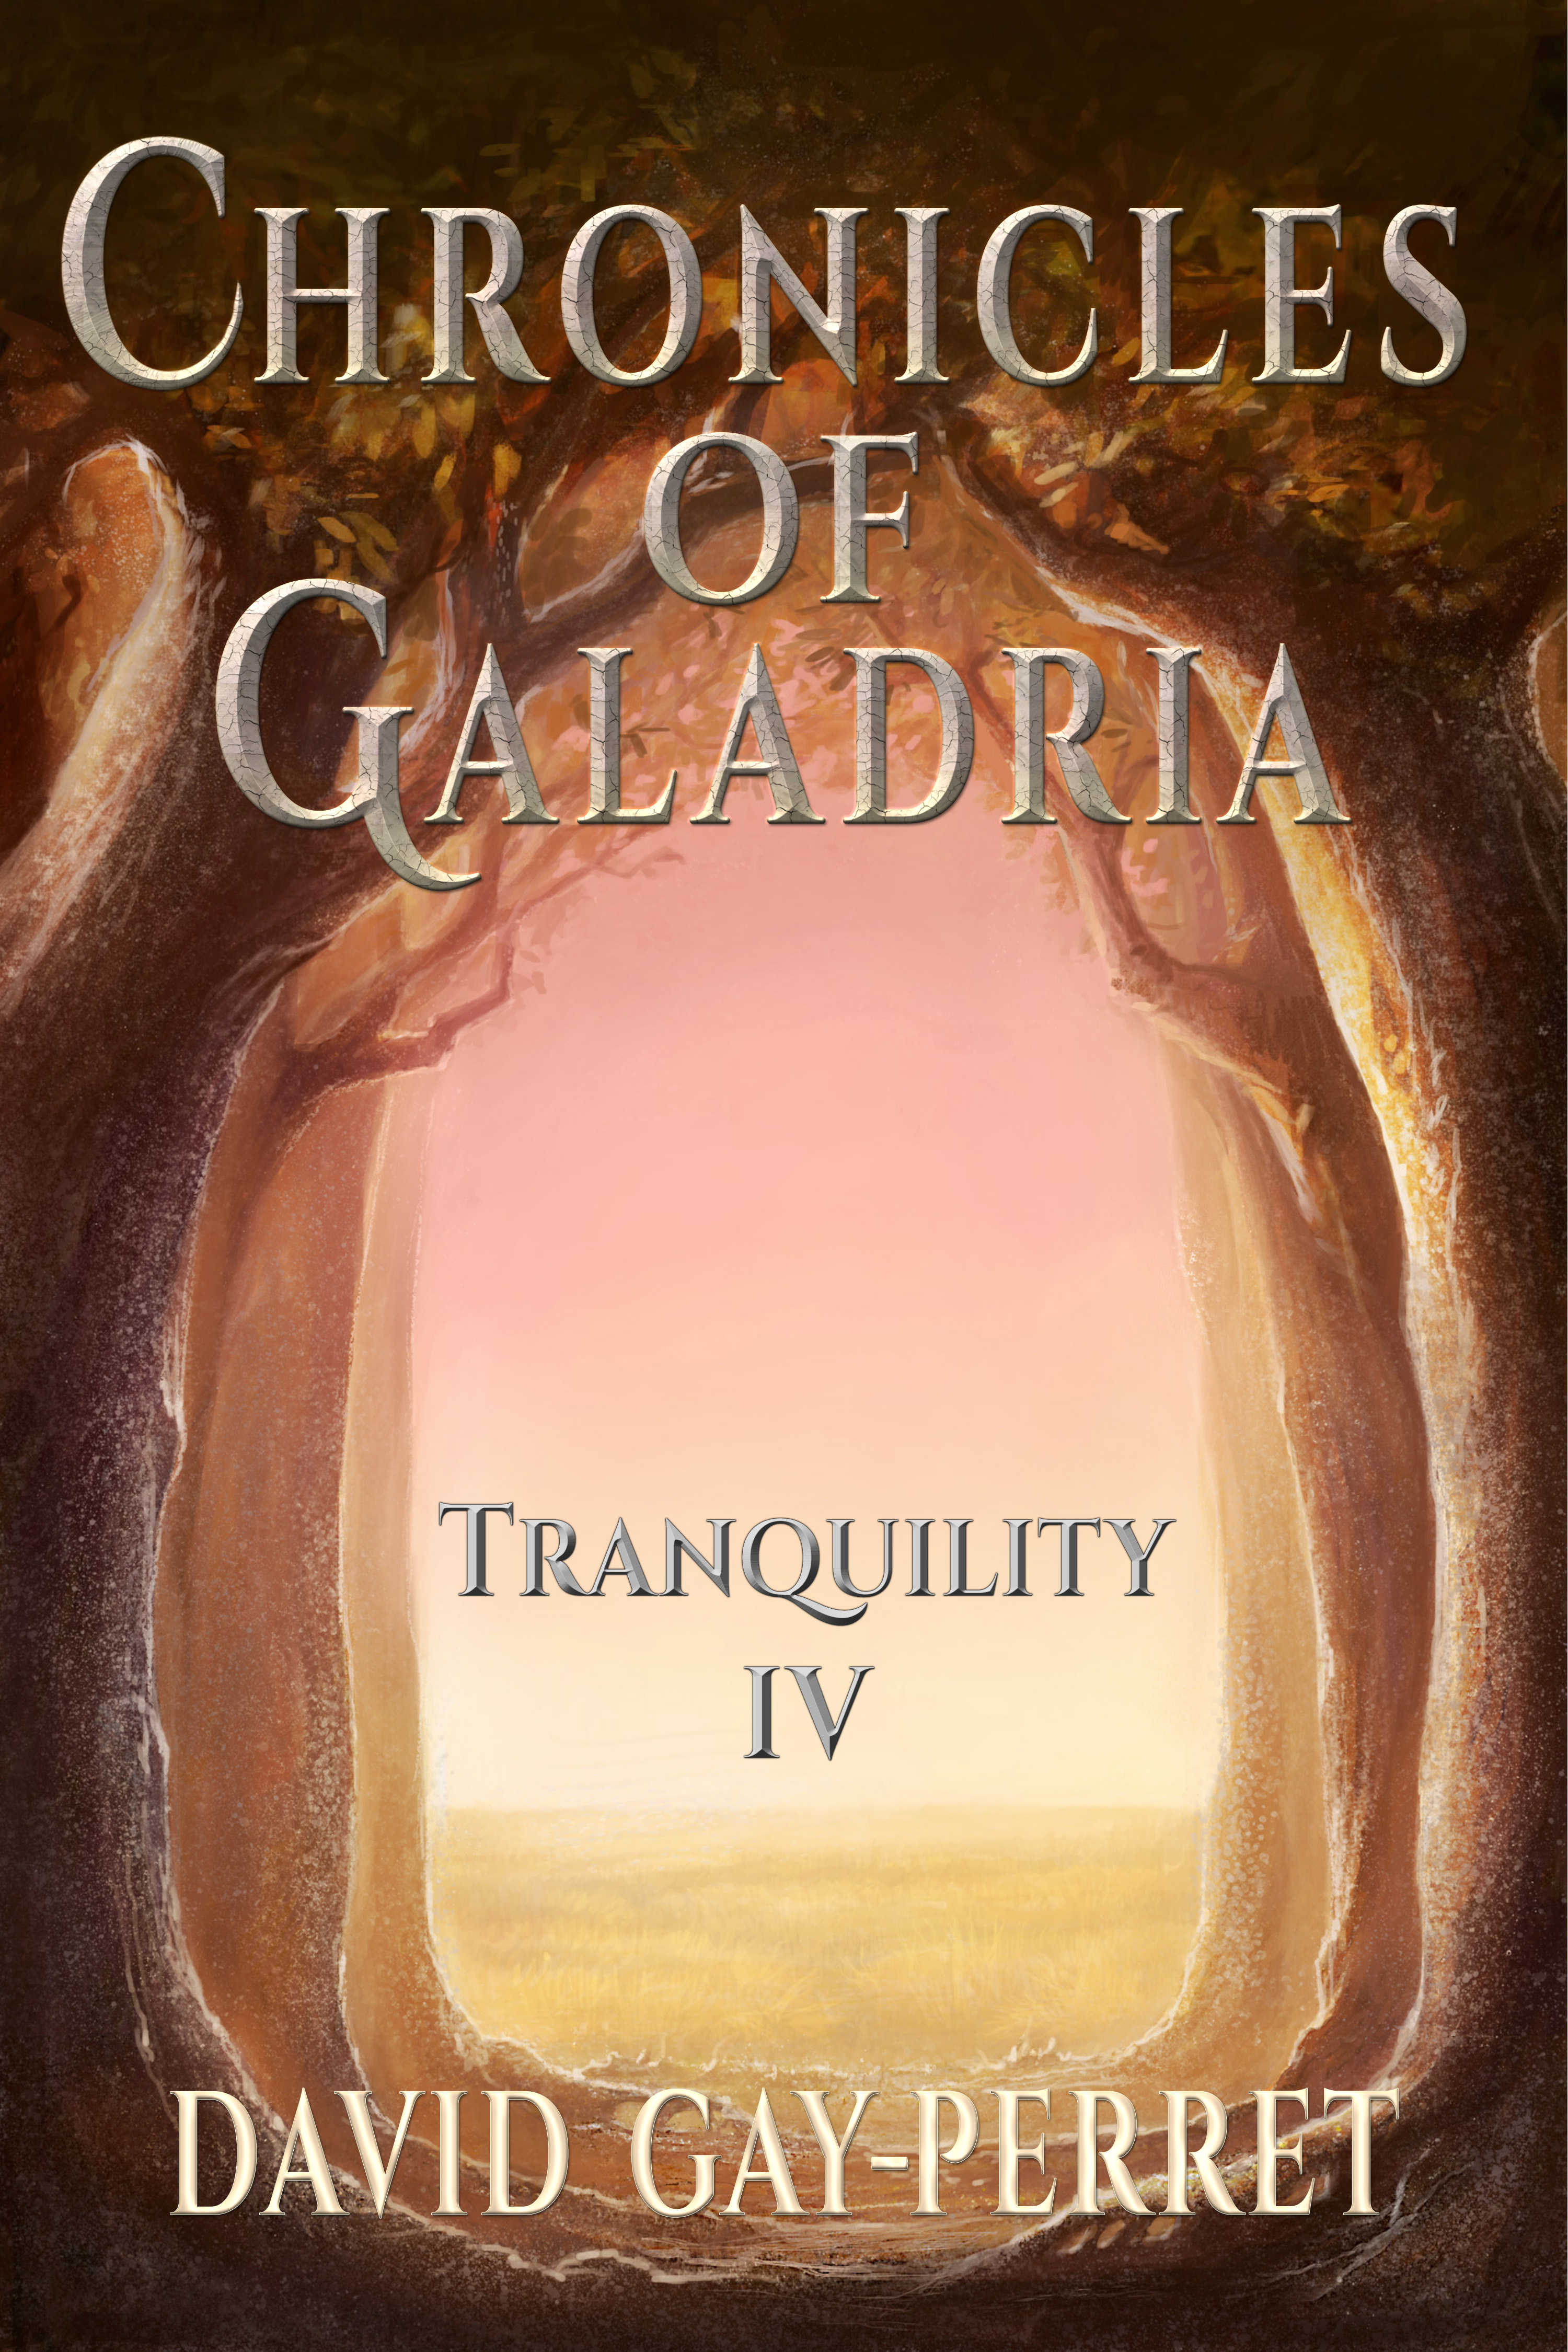 cover of the fourth volume of the Chronicles of Galadria, entitled Tranquility